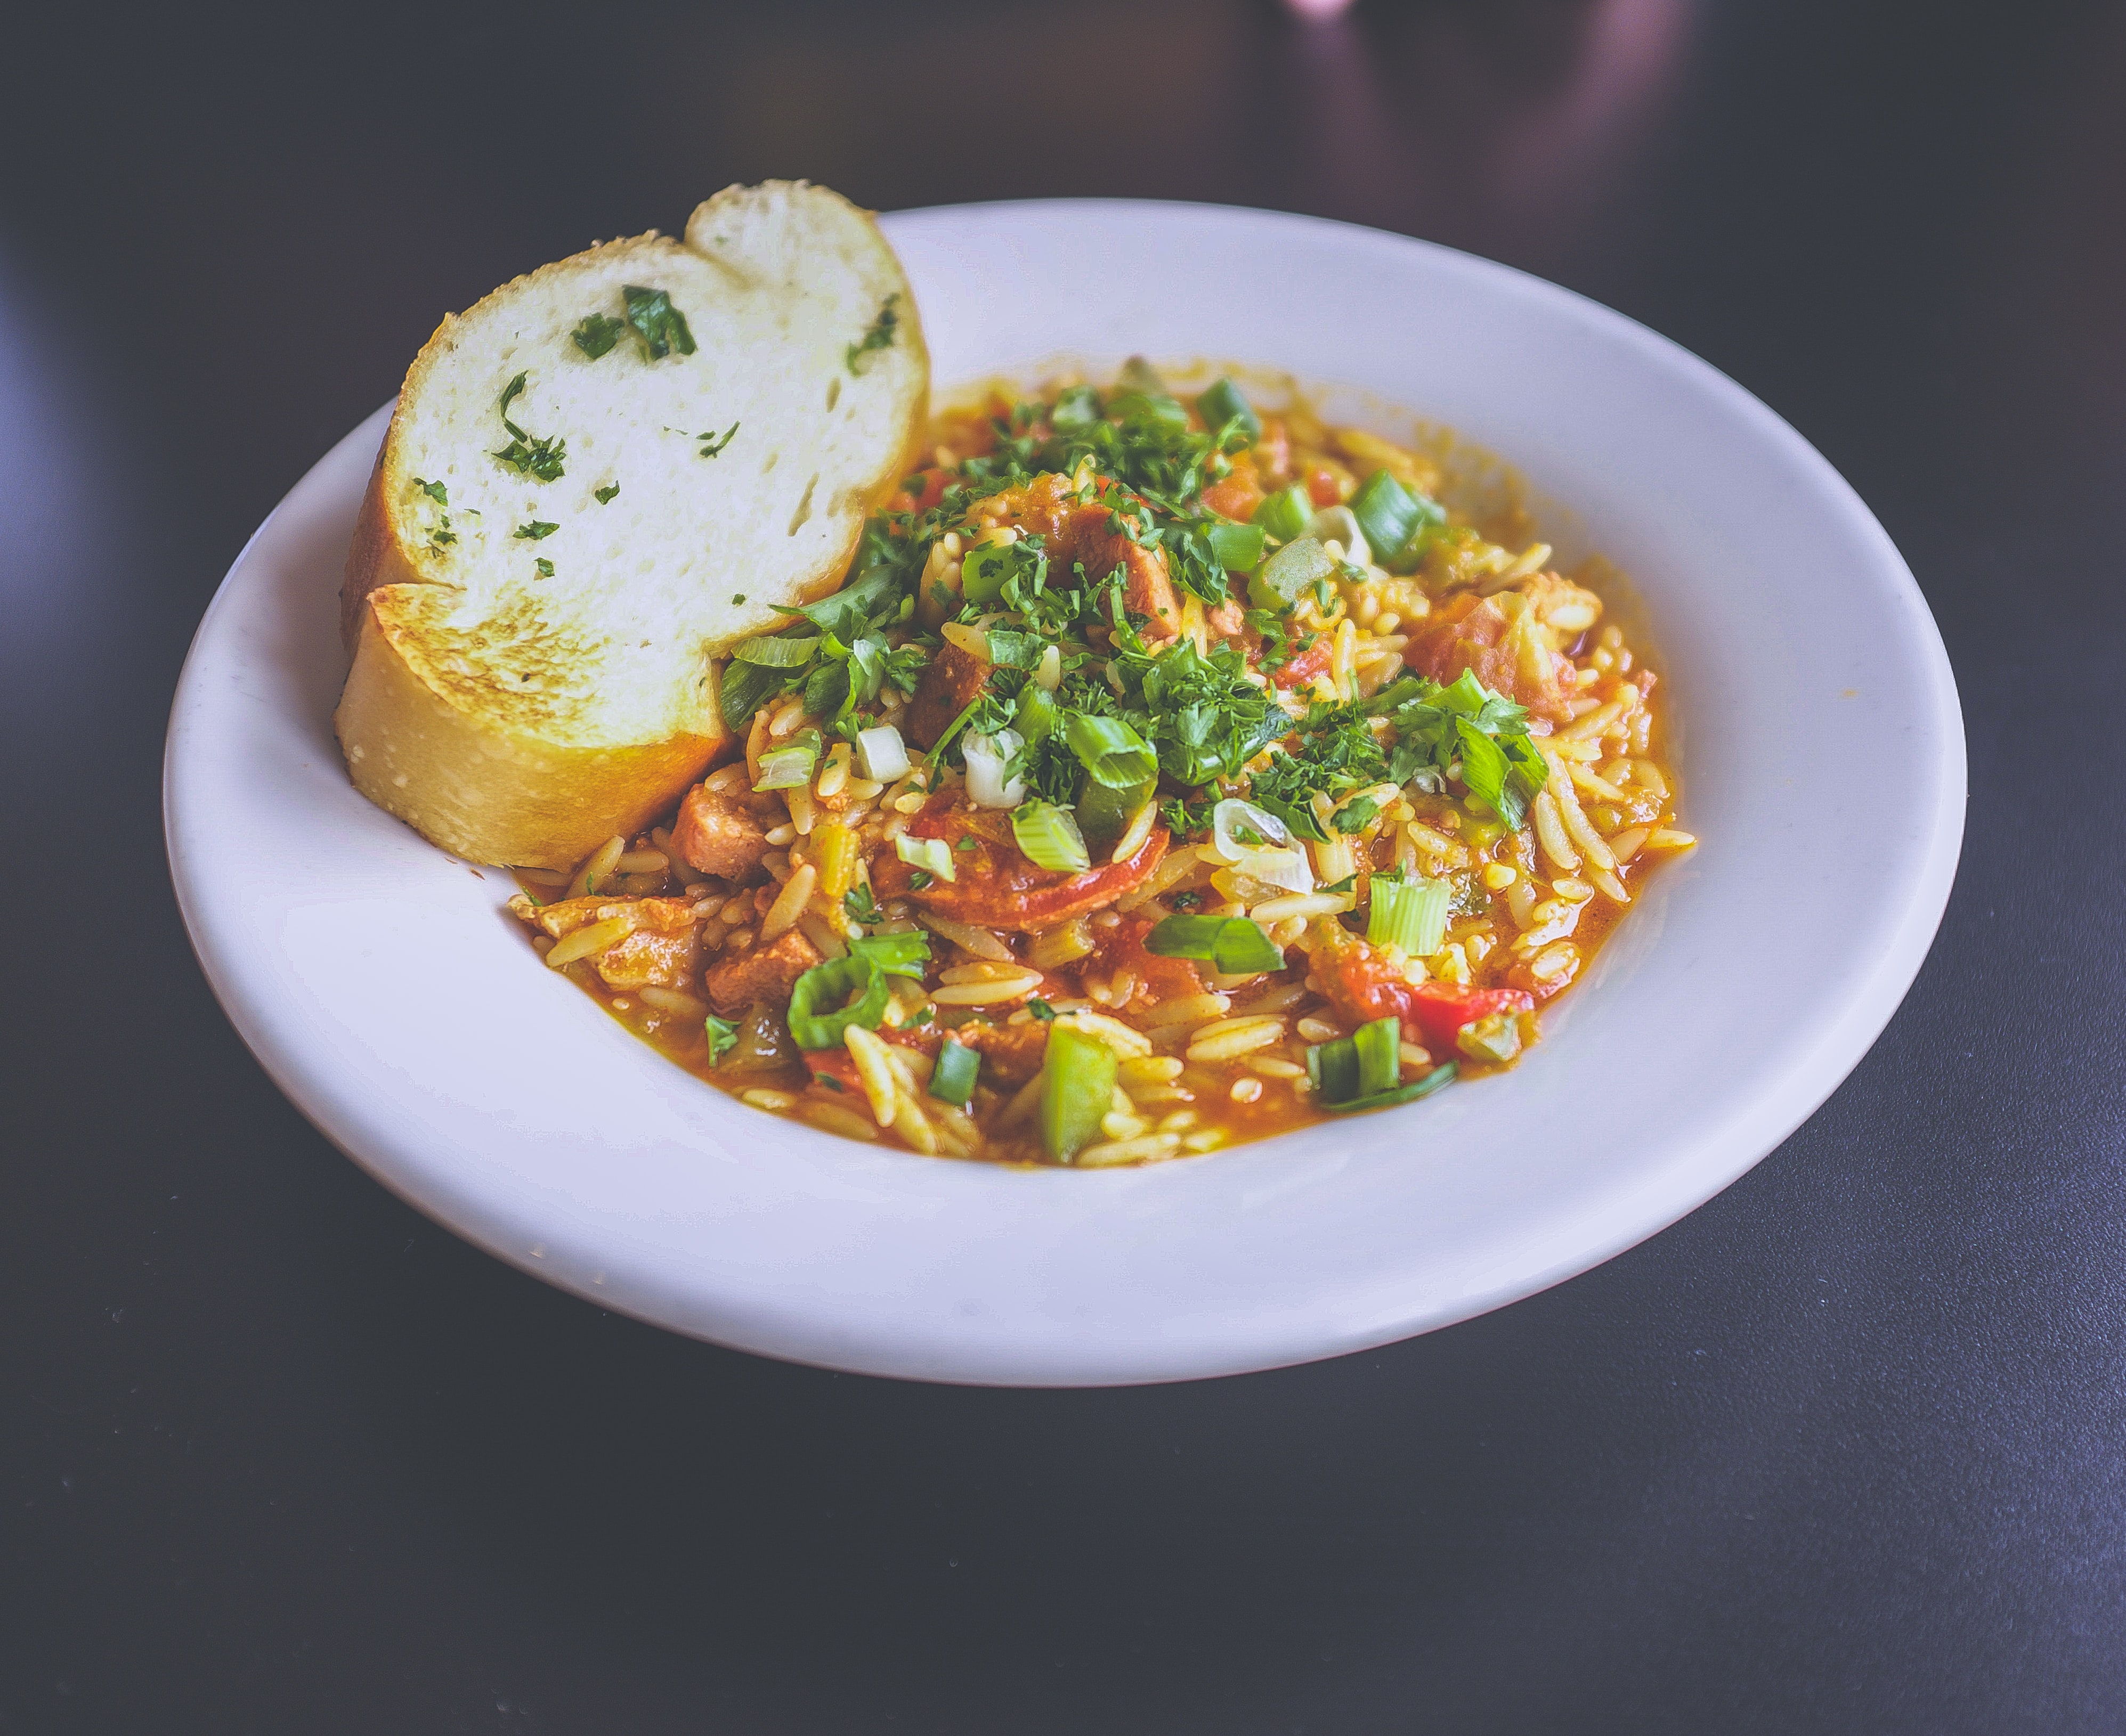 Rice pasta dish garnished with green onions and parsley with a slice of garlic bread served in a ceramic bowl